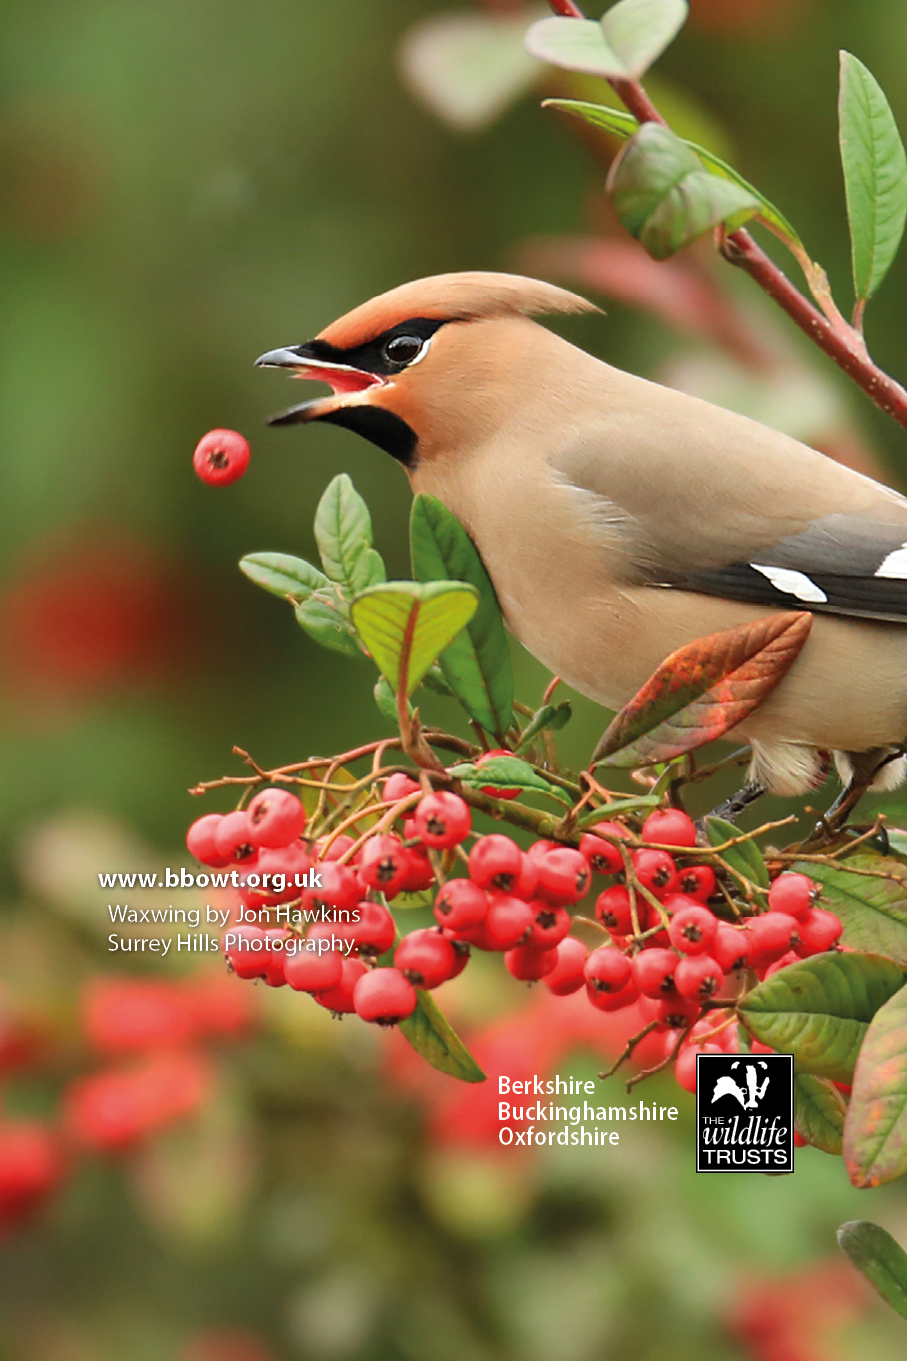 Waxwing mobile wallpaper